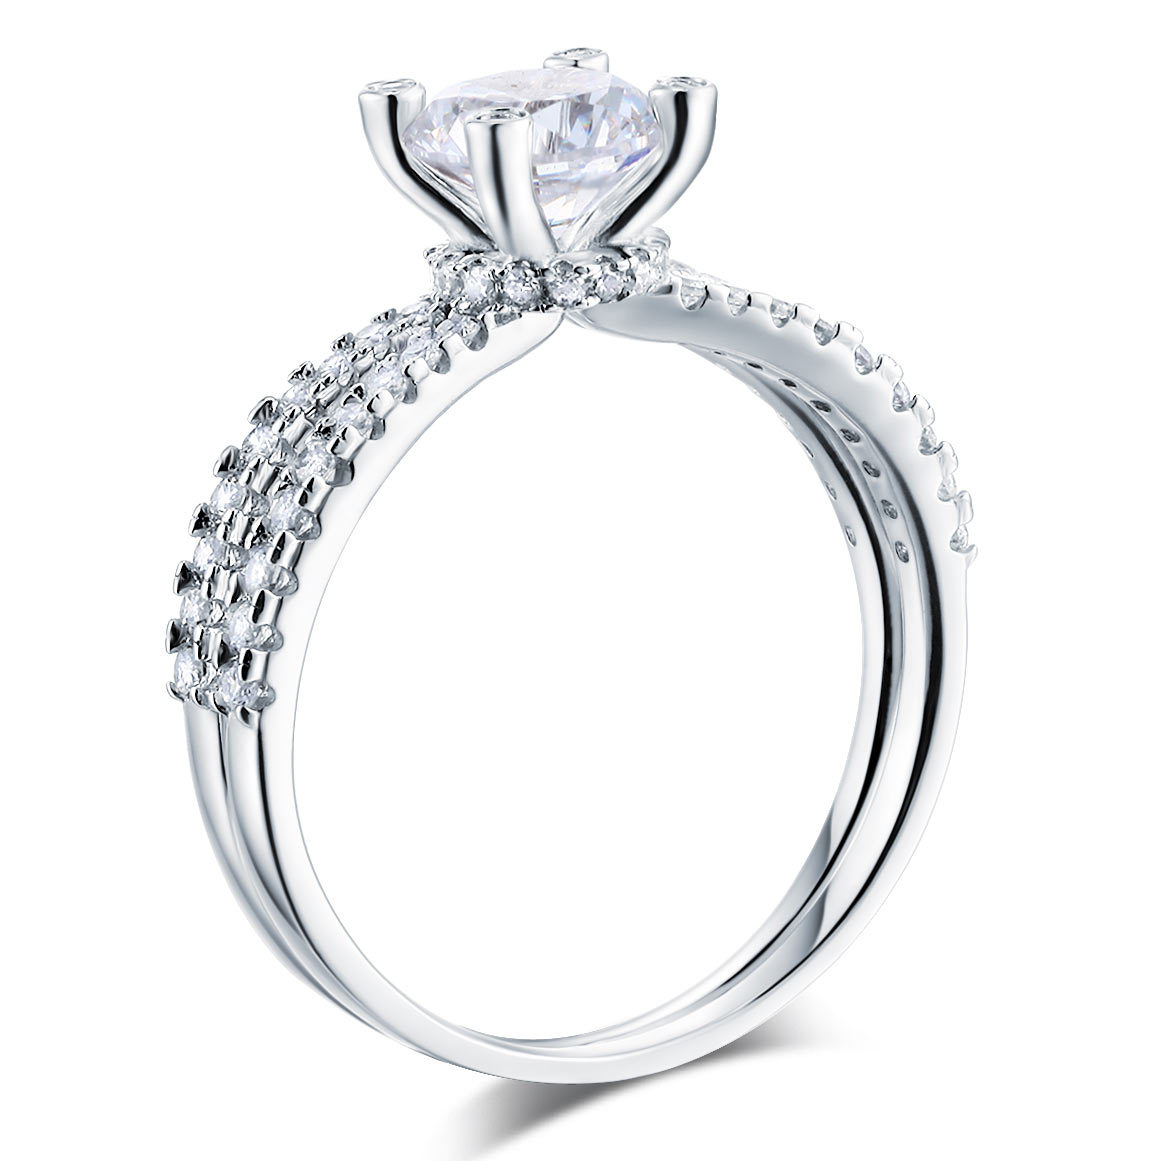 925 Sterling Silver Wedding Engagement Ring 1.25 Carat Round Lab Created Diamond - $119.99